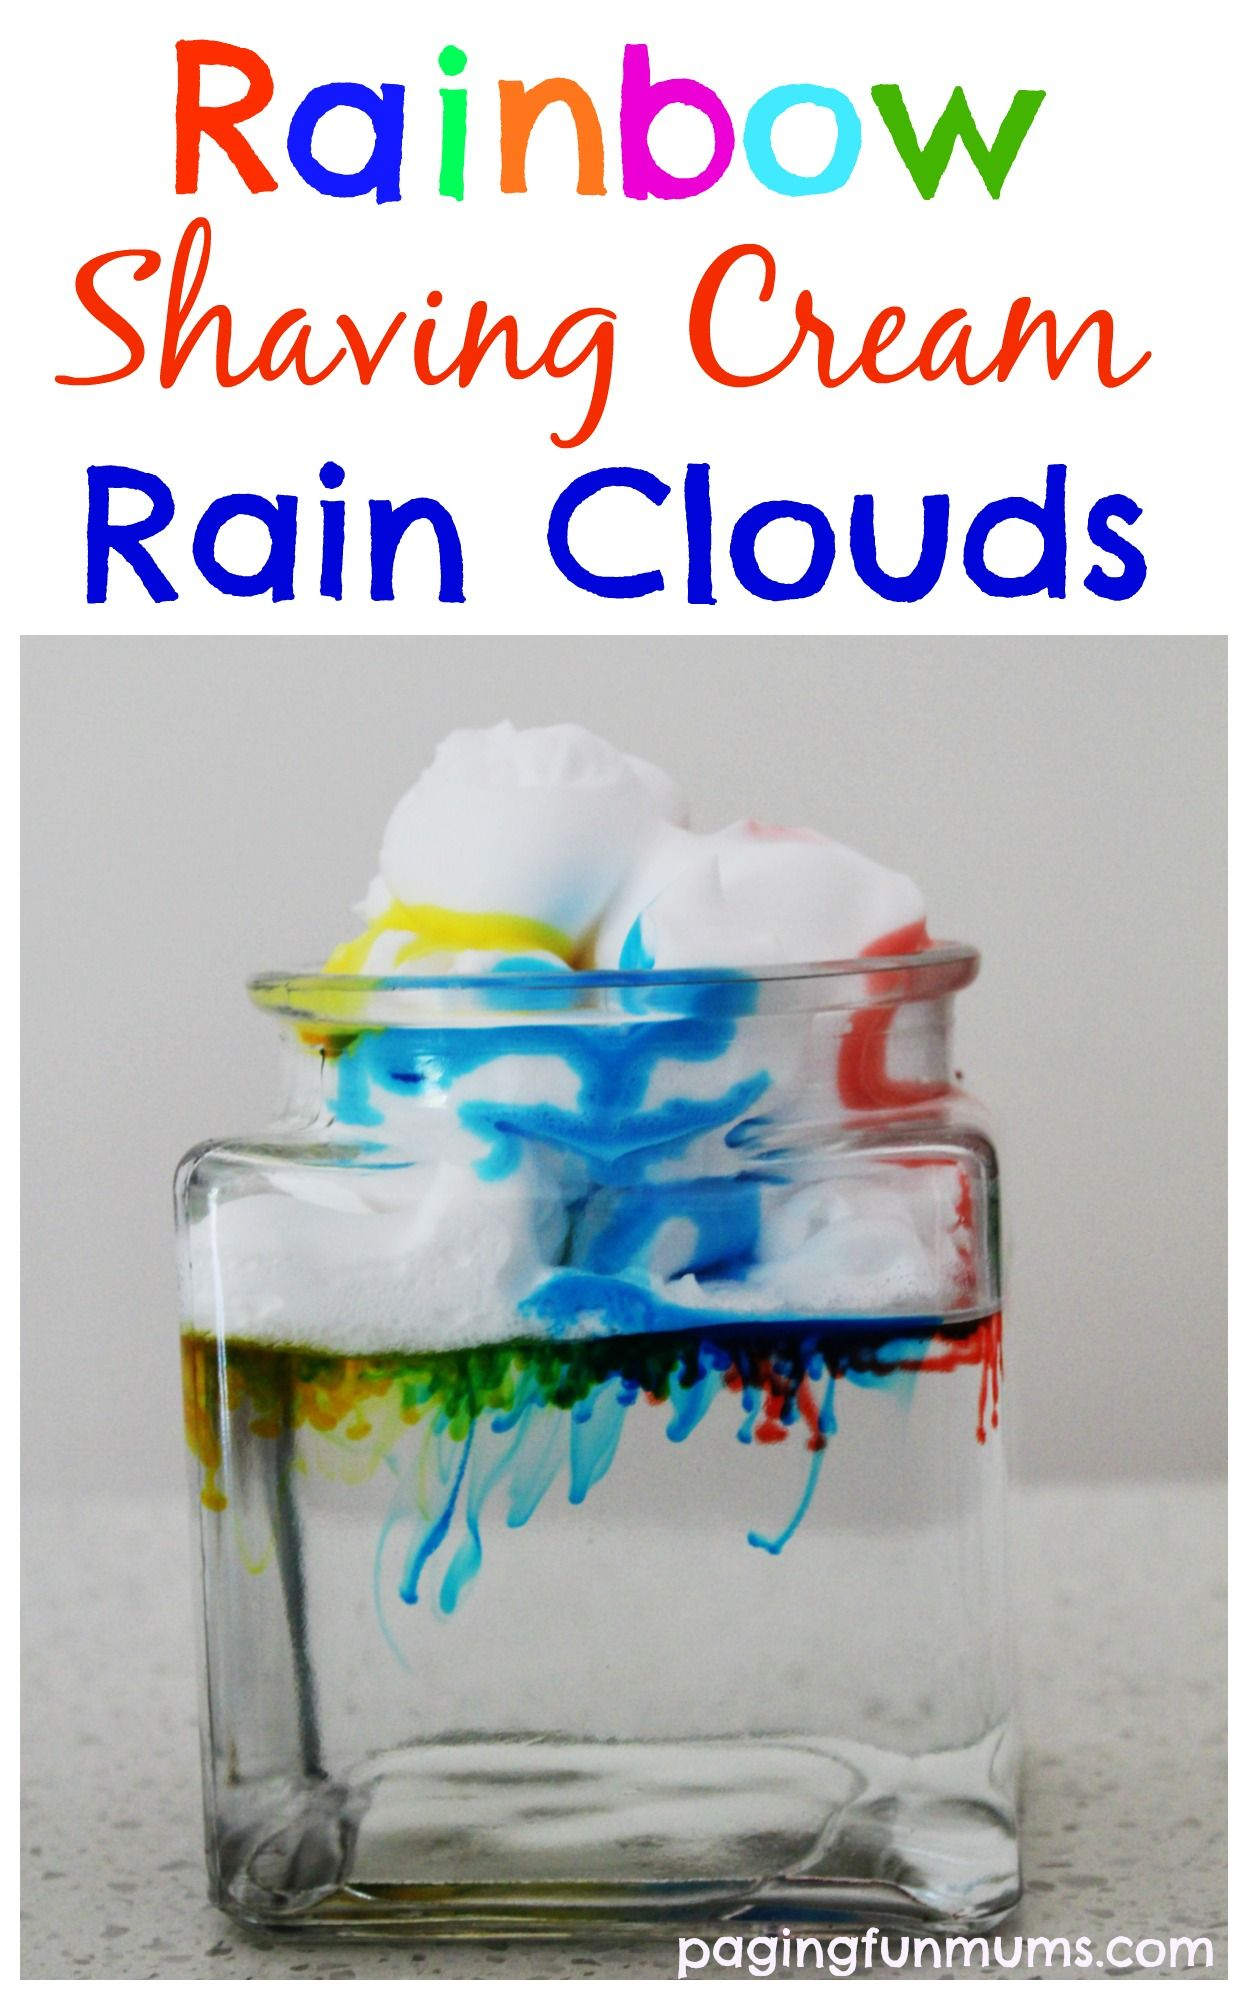 We love Science Activities over at PFM central! It's a great way to have fun whilst learning all the way! You can check out some of our other Science Experiments here. The particular experiment teaches kids about how rain is formed! When water droplets evaporate and continue to collect in a cloud, they get heavier …